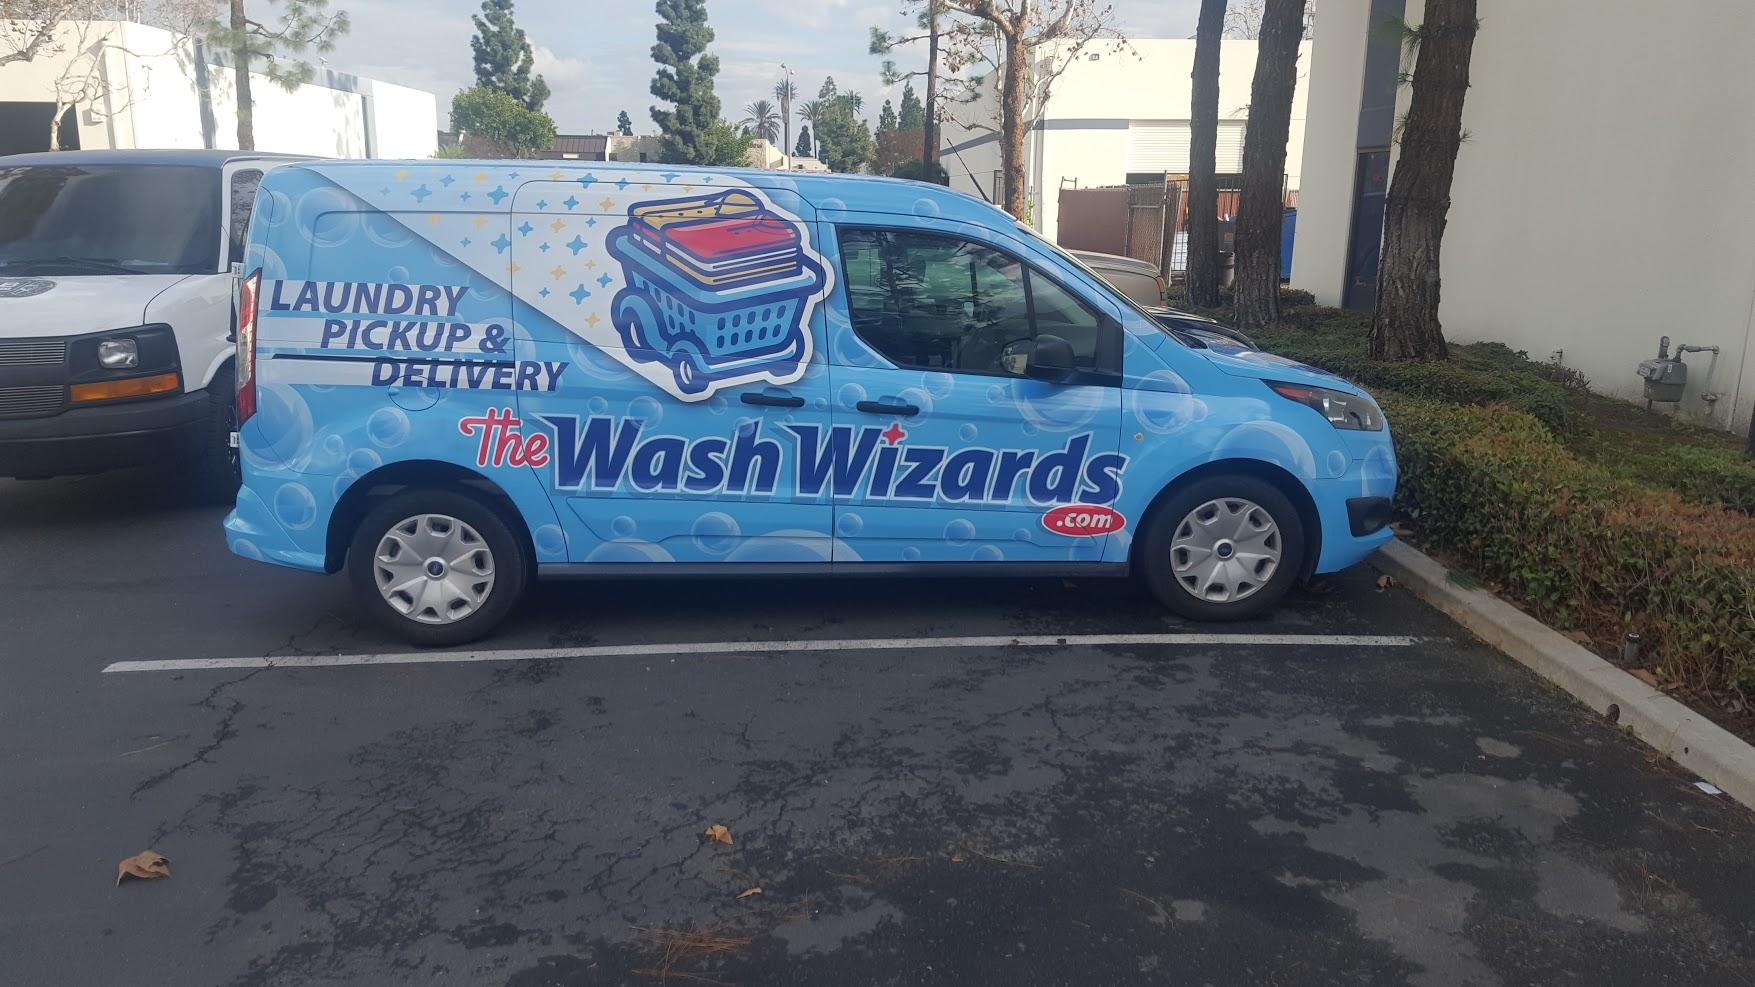 Wash Wizards Laundry Pickup & Delivery Service - Oxnard image 8